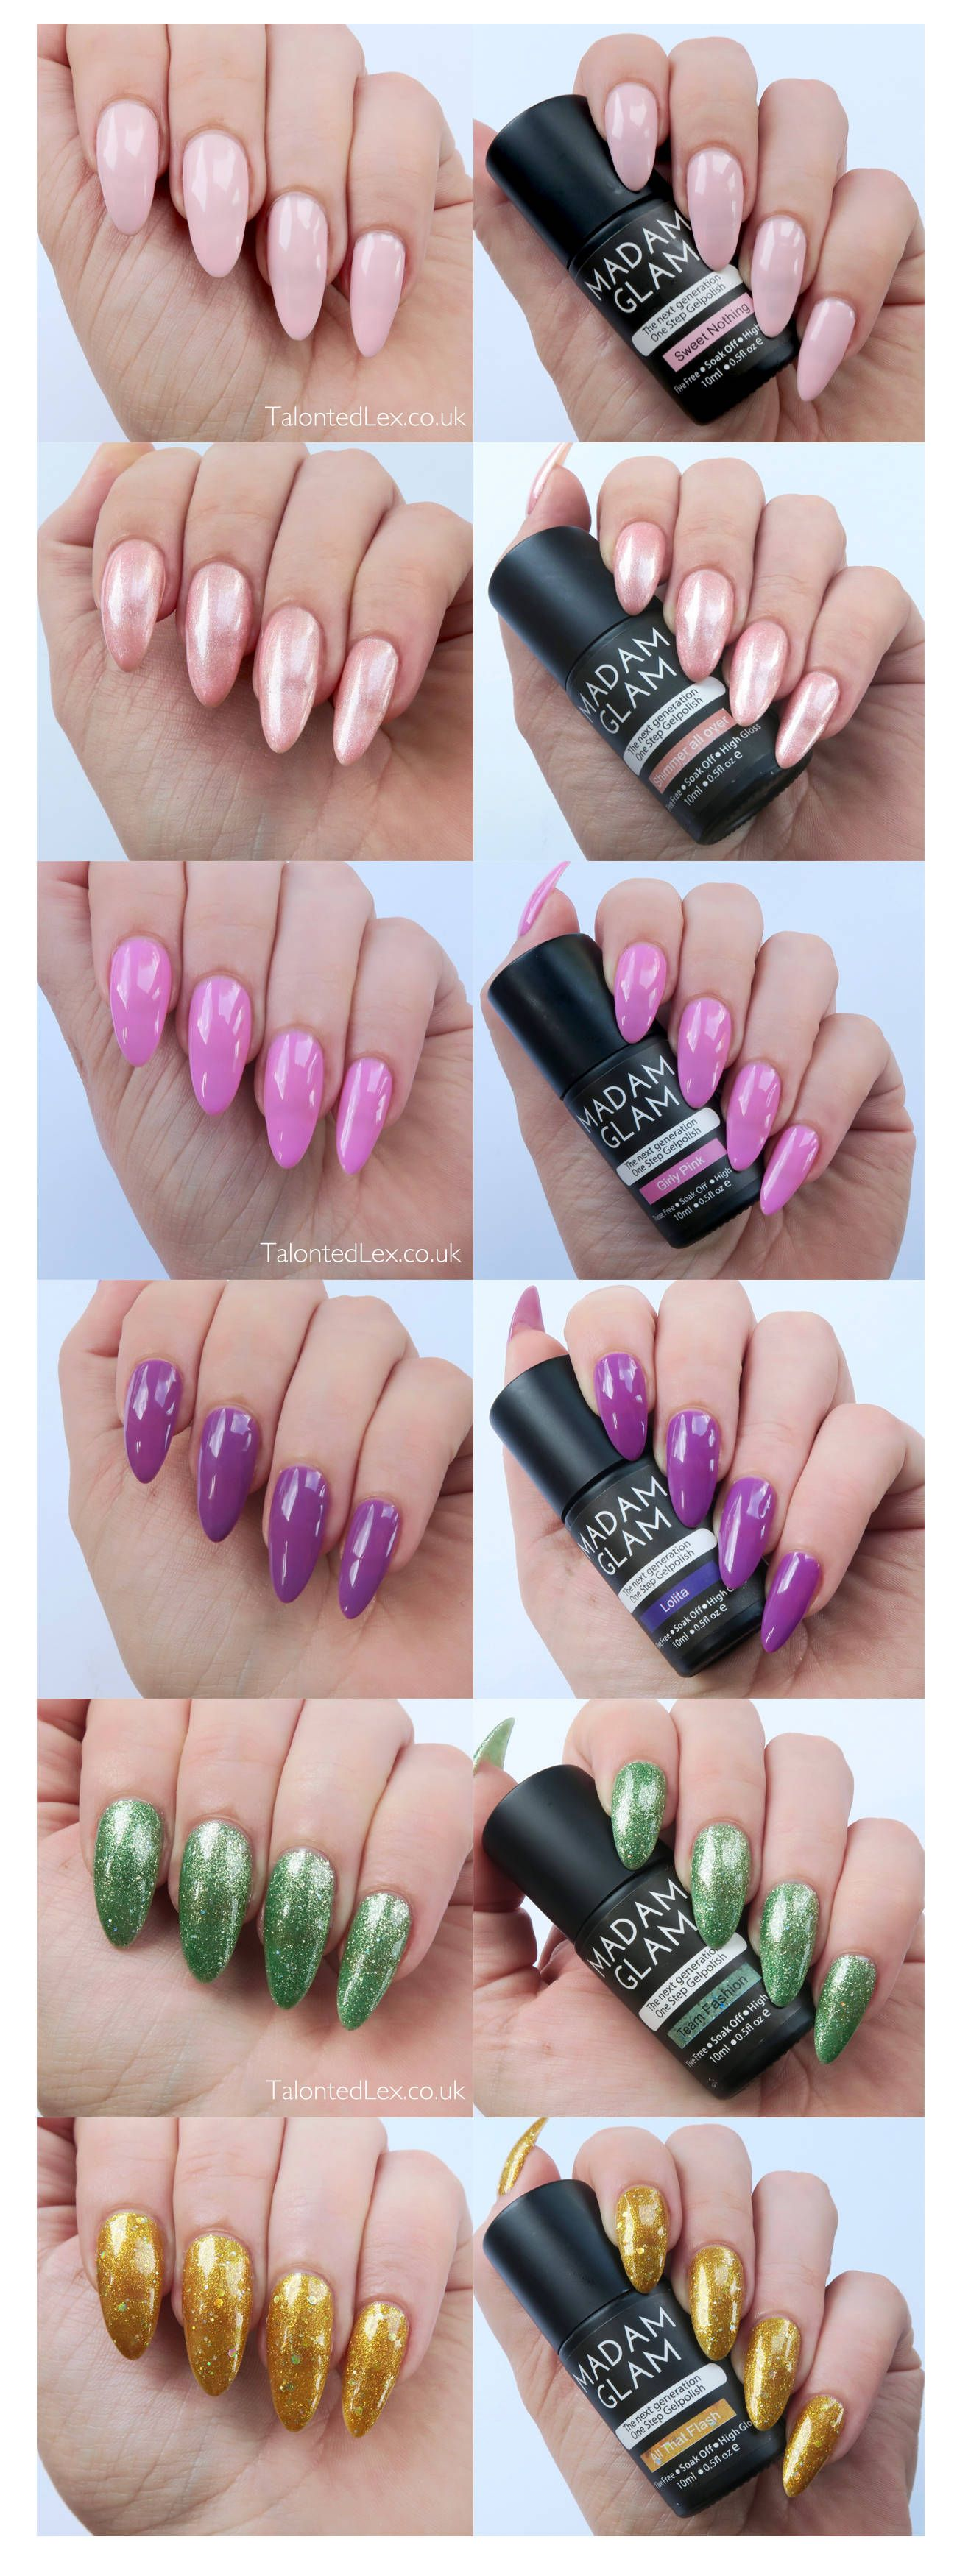 Madam Glam One Step Gels Review